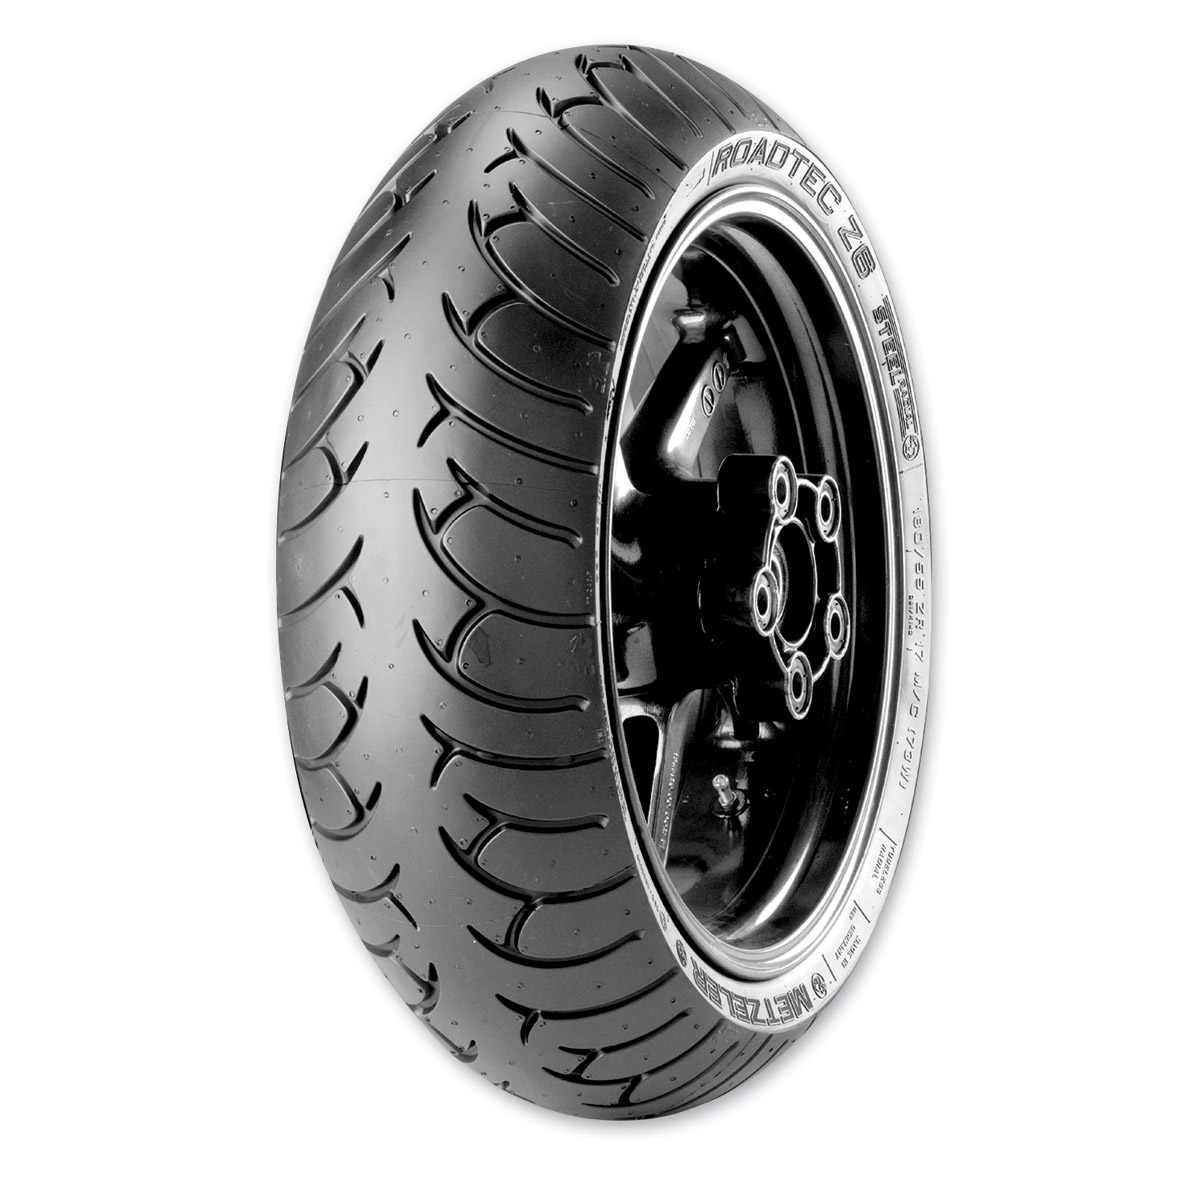 Metzeler Roadtec Z6 180/55ZR17 Rear Tire